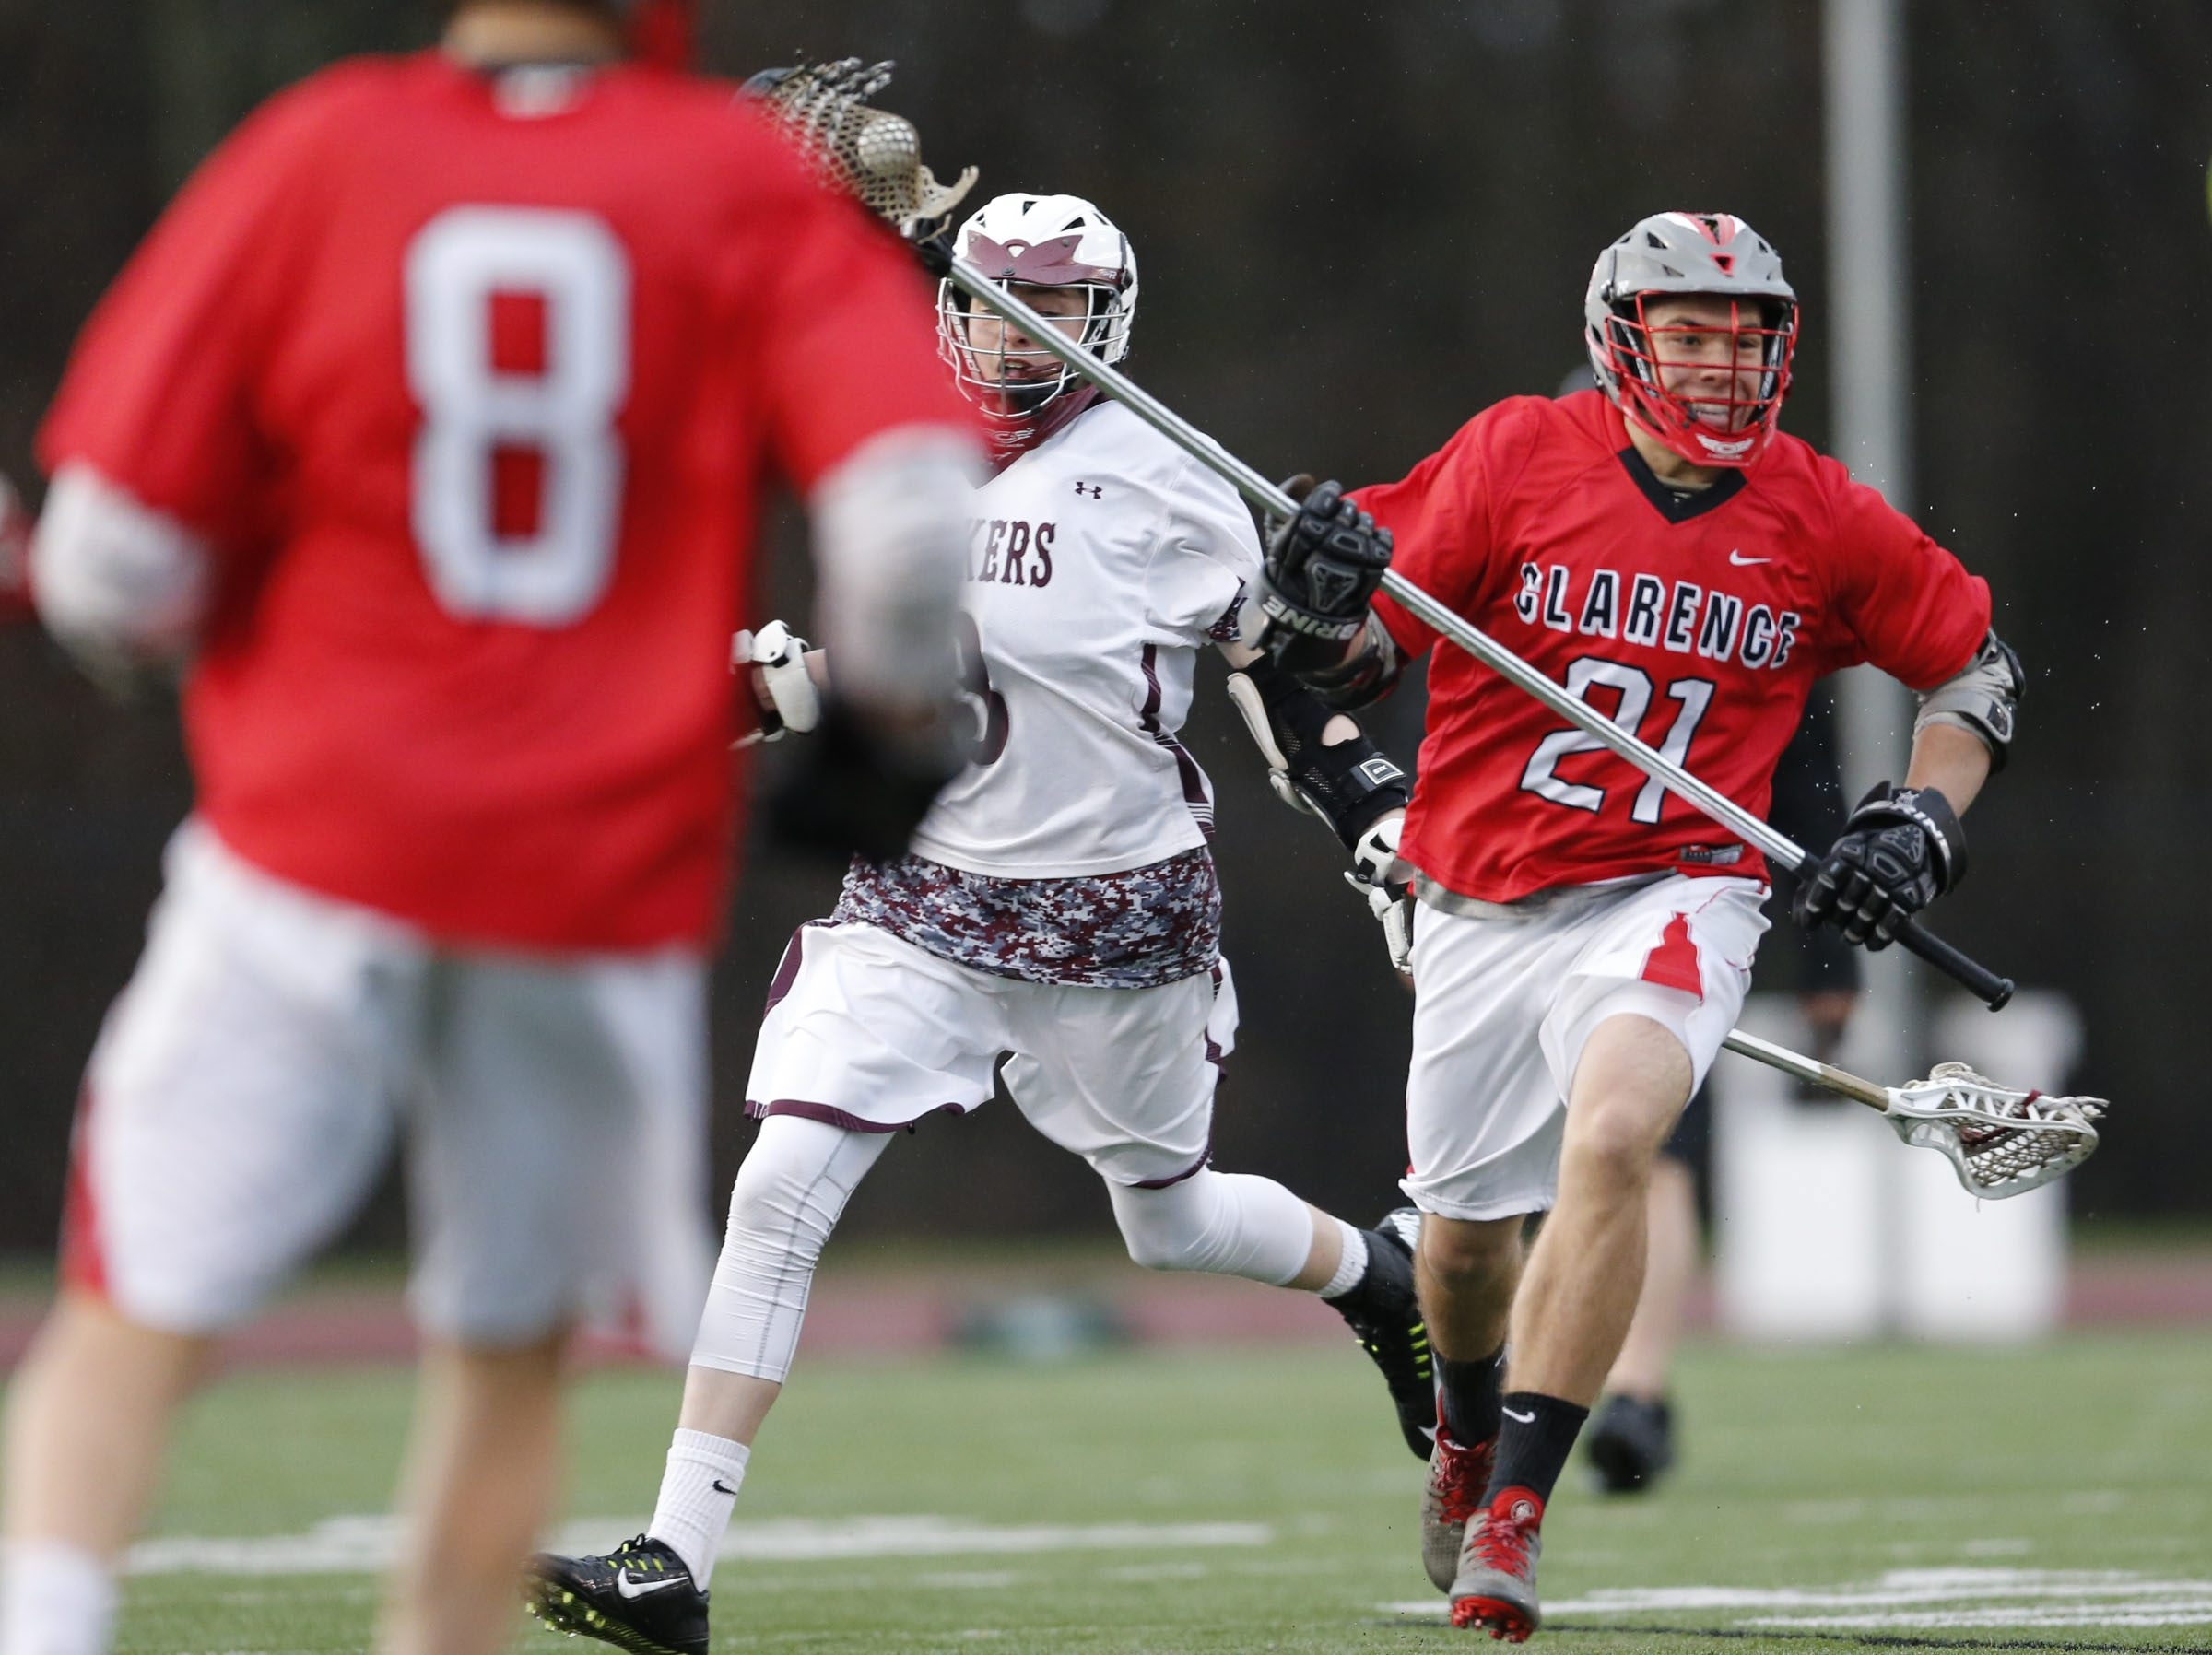 Clarence defenseman Spencer Irving heads upfield during a 13-9 victory over host Orchard Park in a Class A lacrosse matchup Monday.